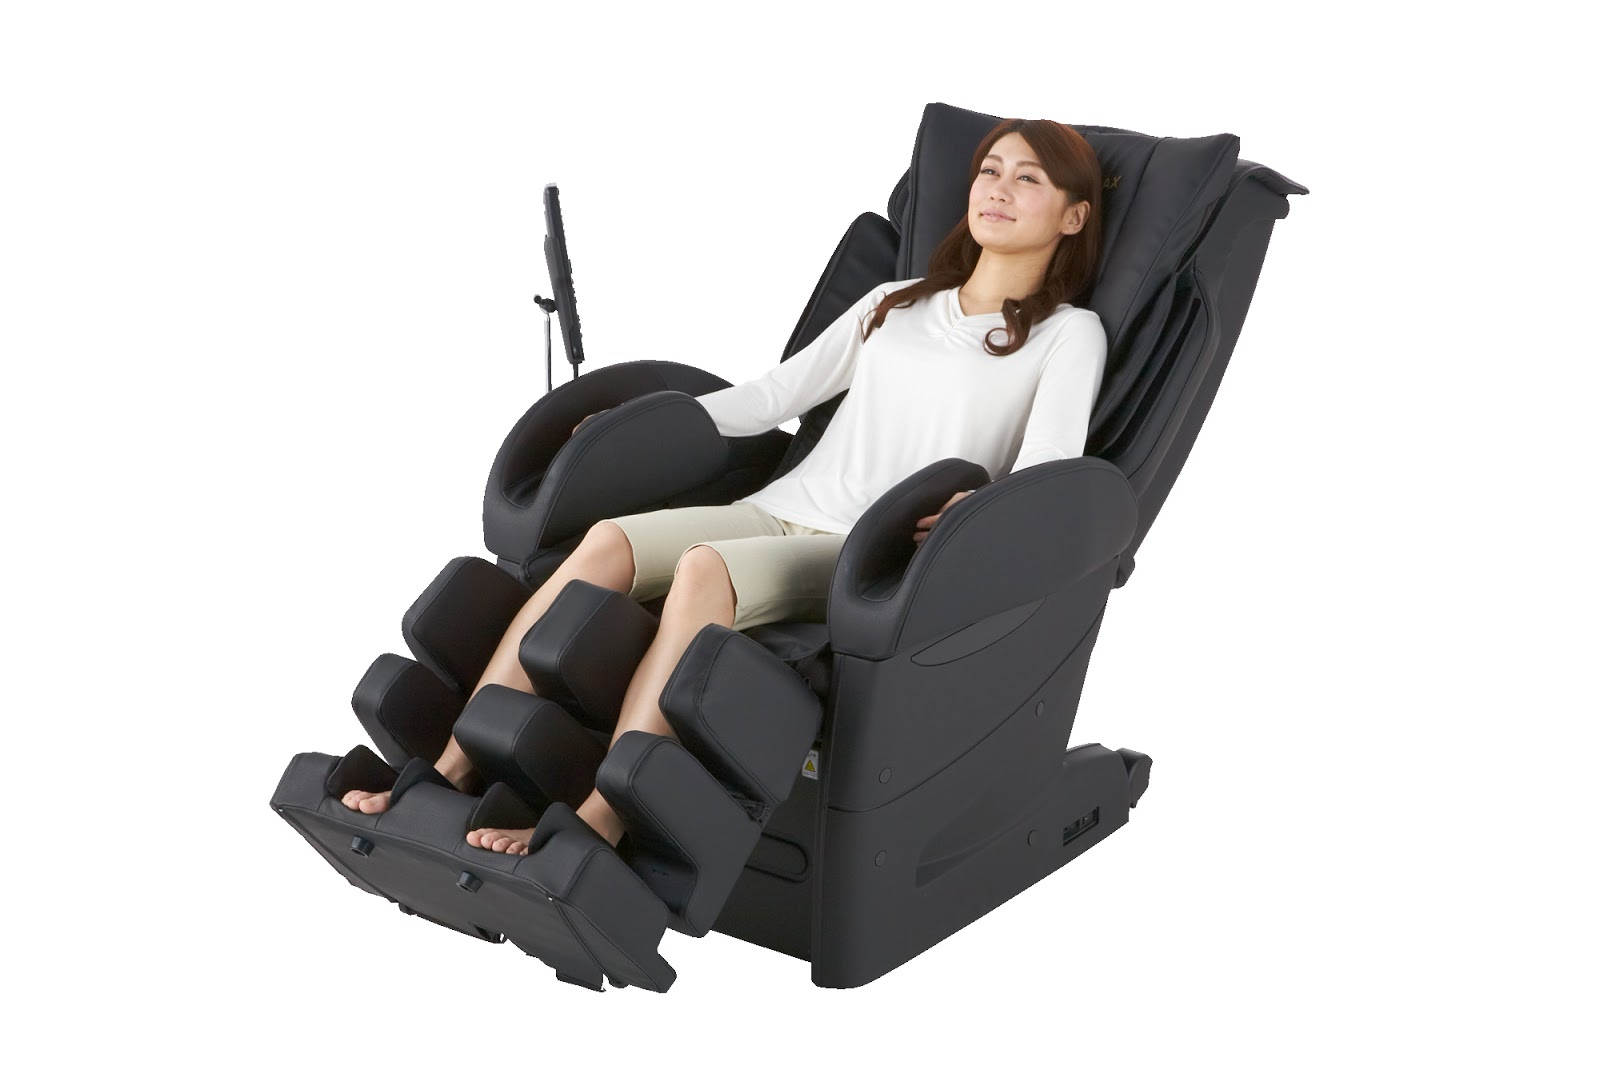 Asian Massage Chairs Cheap Chair Cover Hire Kent Yusuke Japan Blog In Consumer Electronics